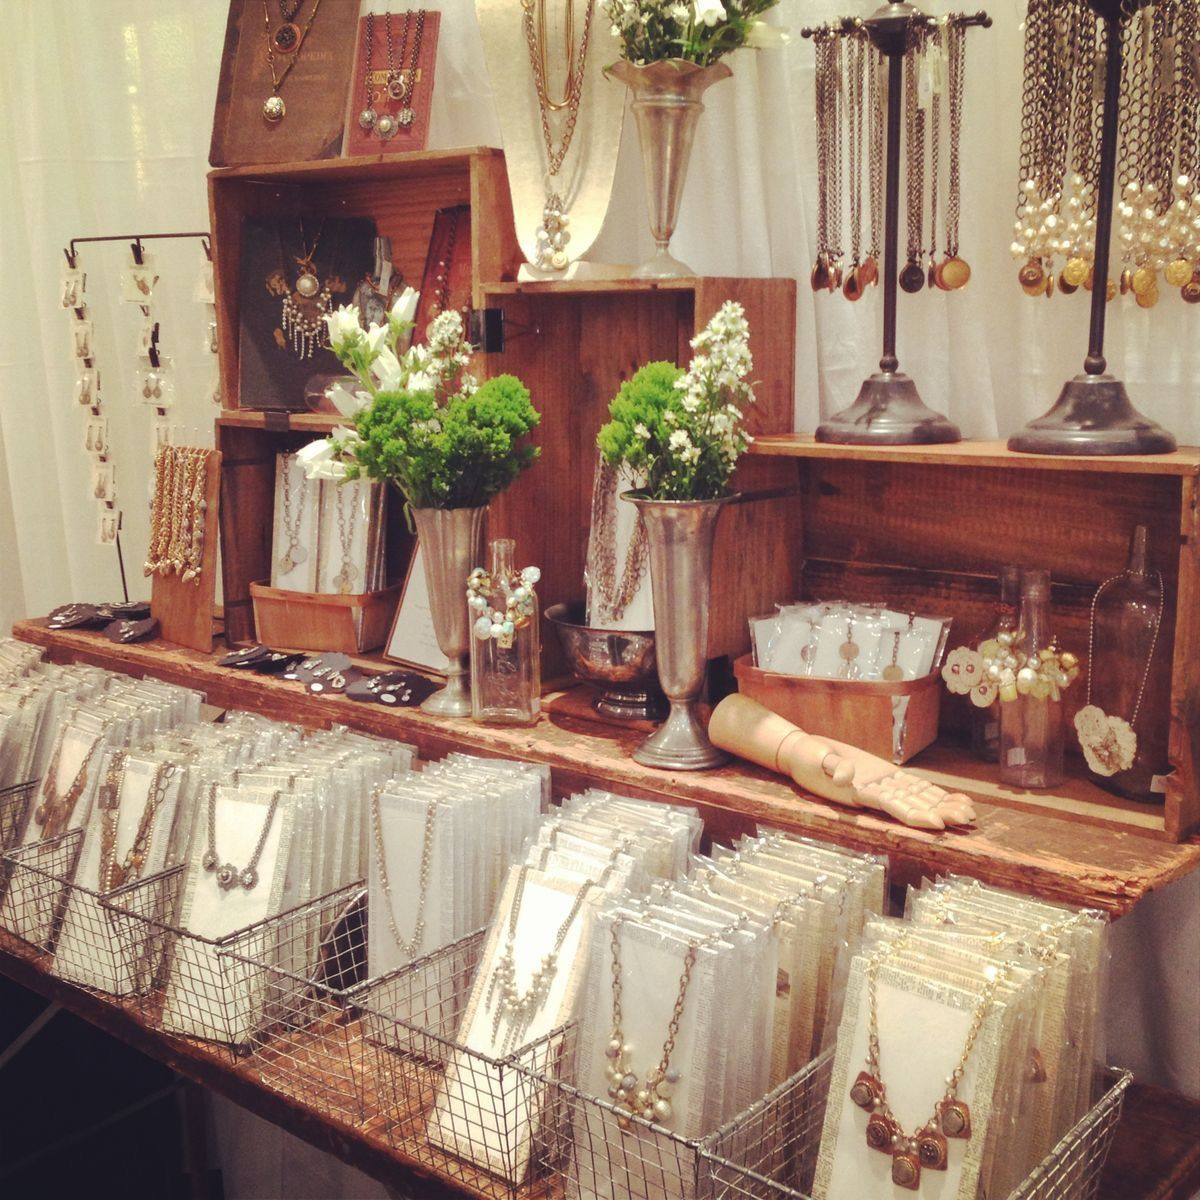 Explore Booth Displays, Store Displays, and more!